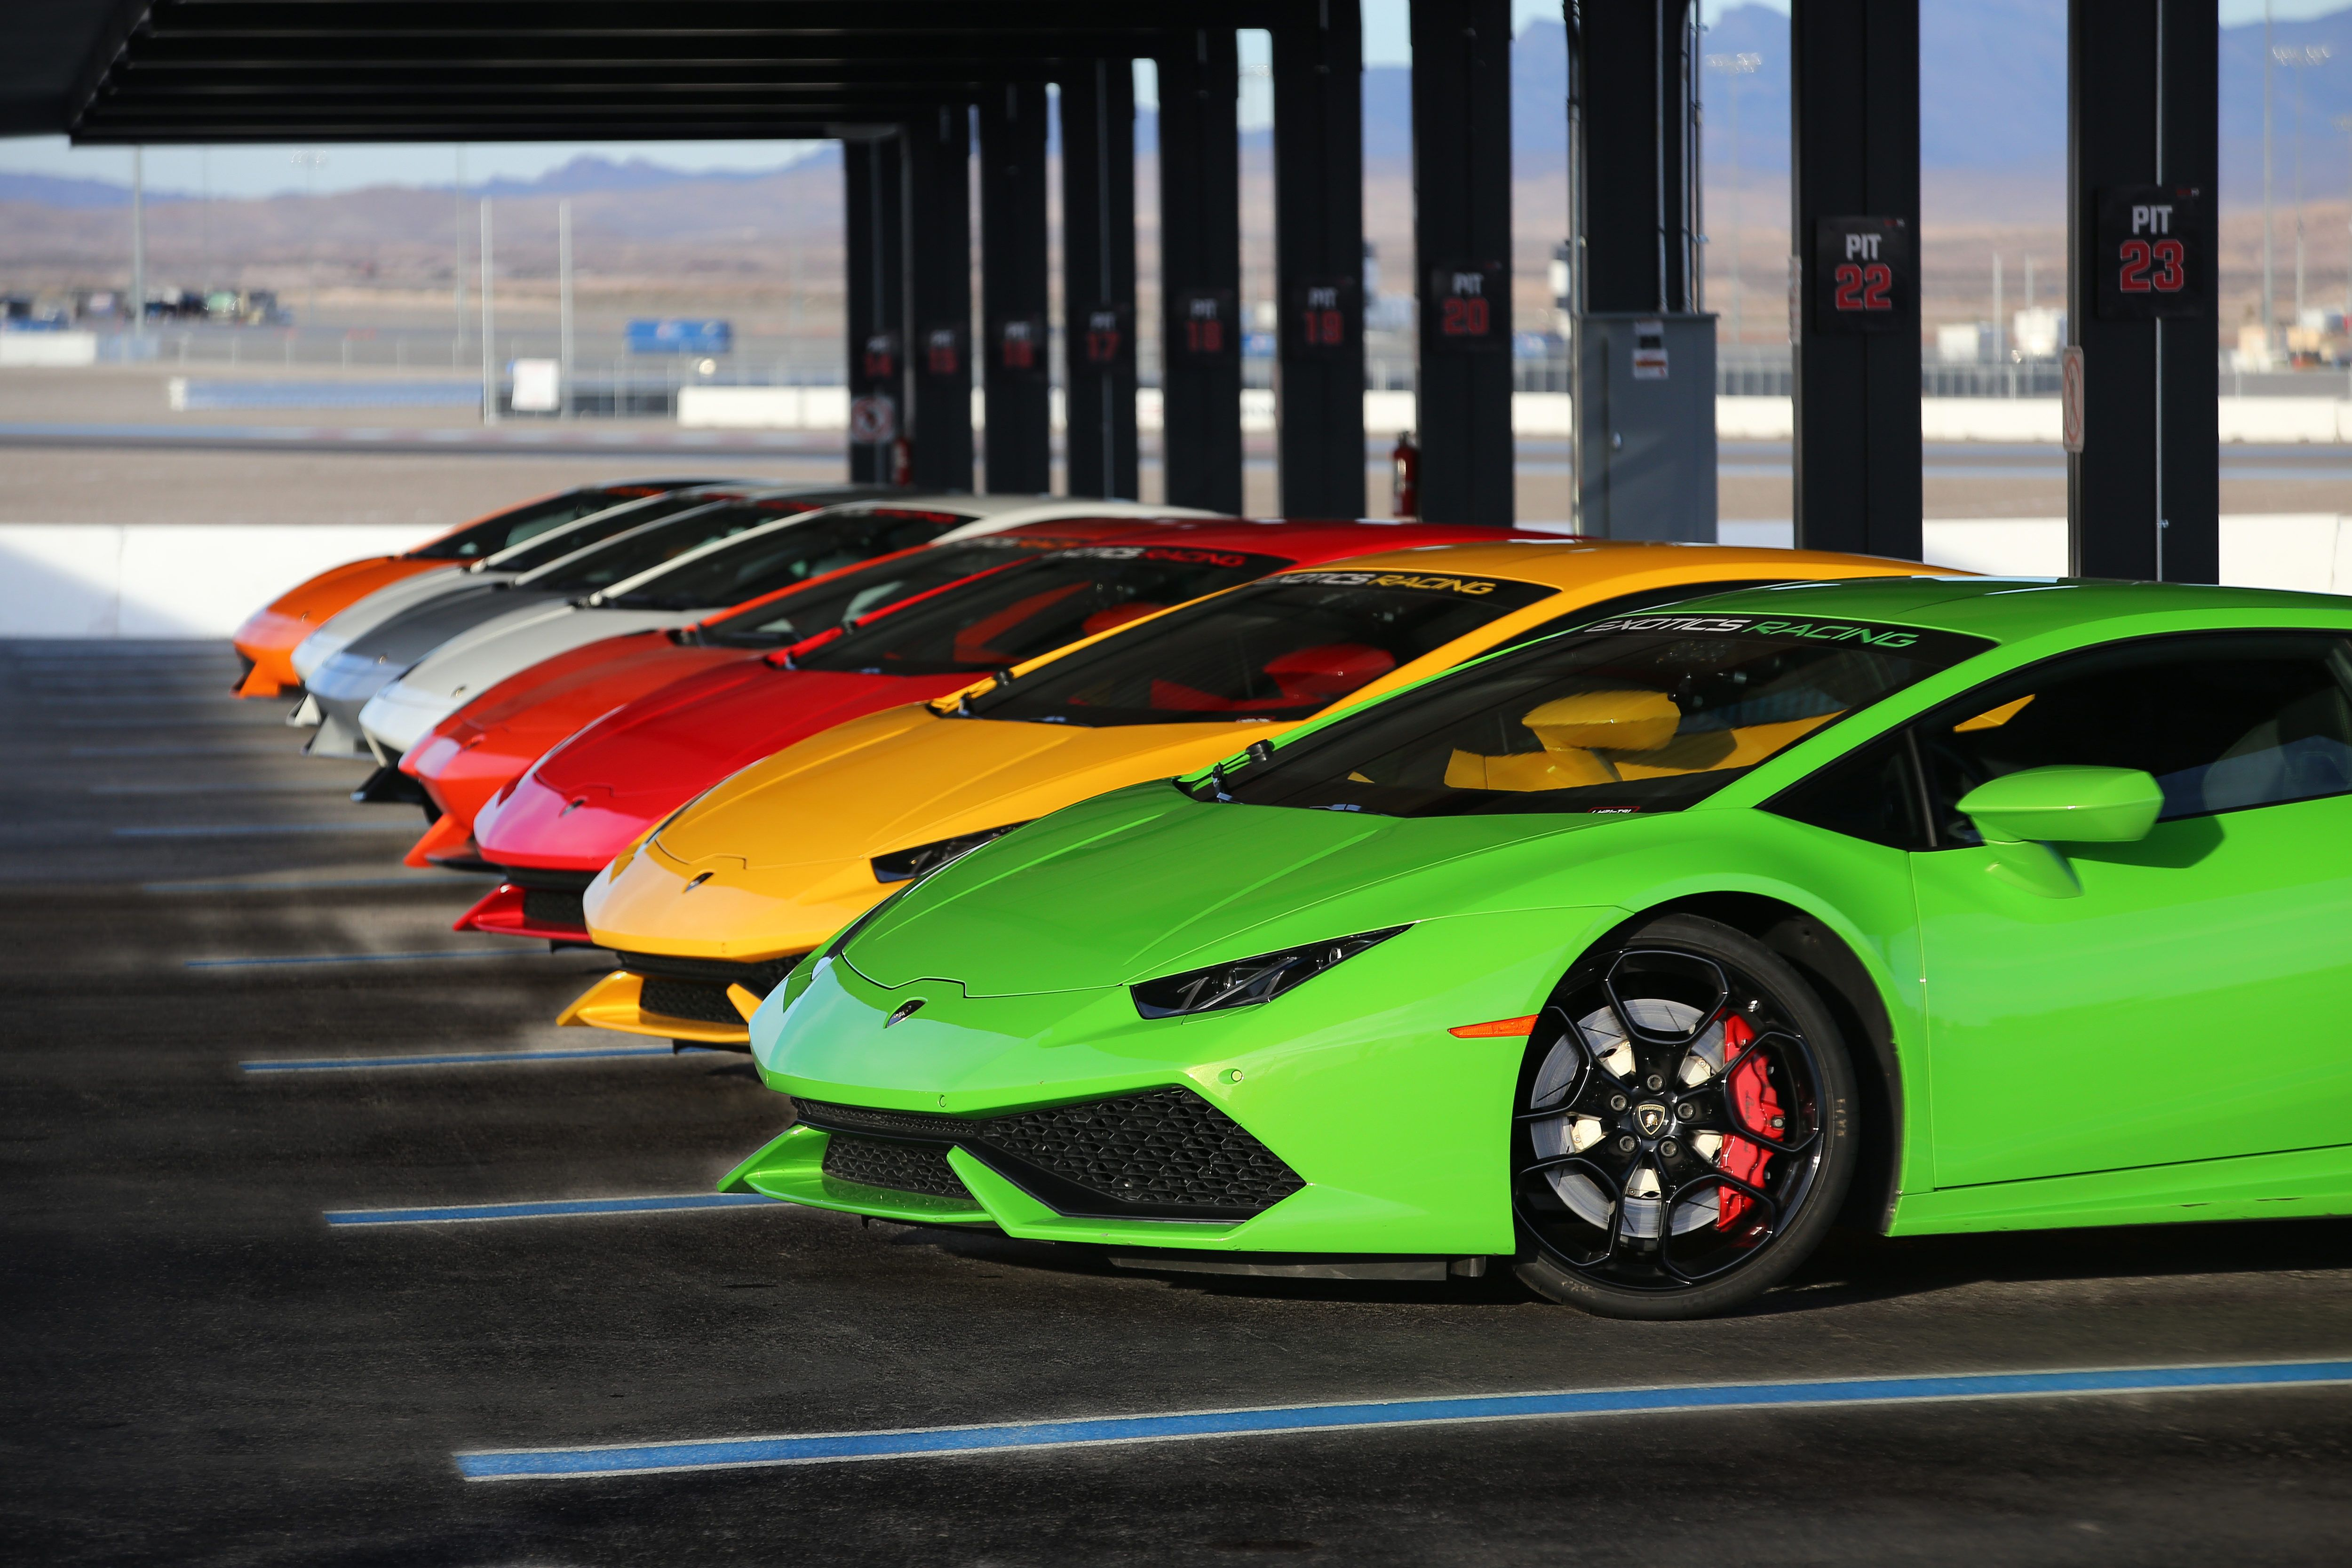 Now That S What We Call Curves In All The Right Places Drive The Exoticcars Of Your Dreams Around A Real Racetr Car Buying Race Car Driving Car Buying Guide